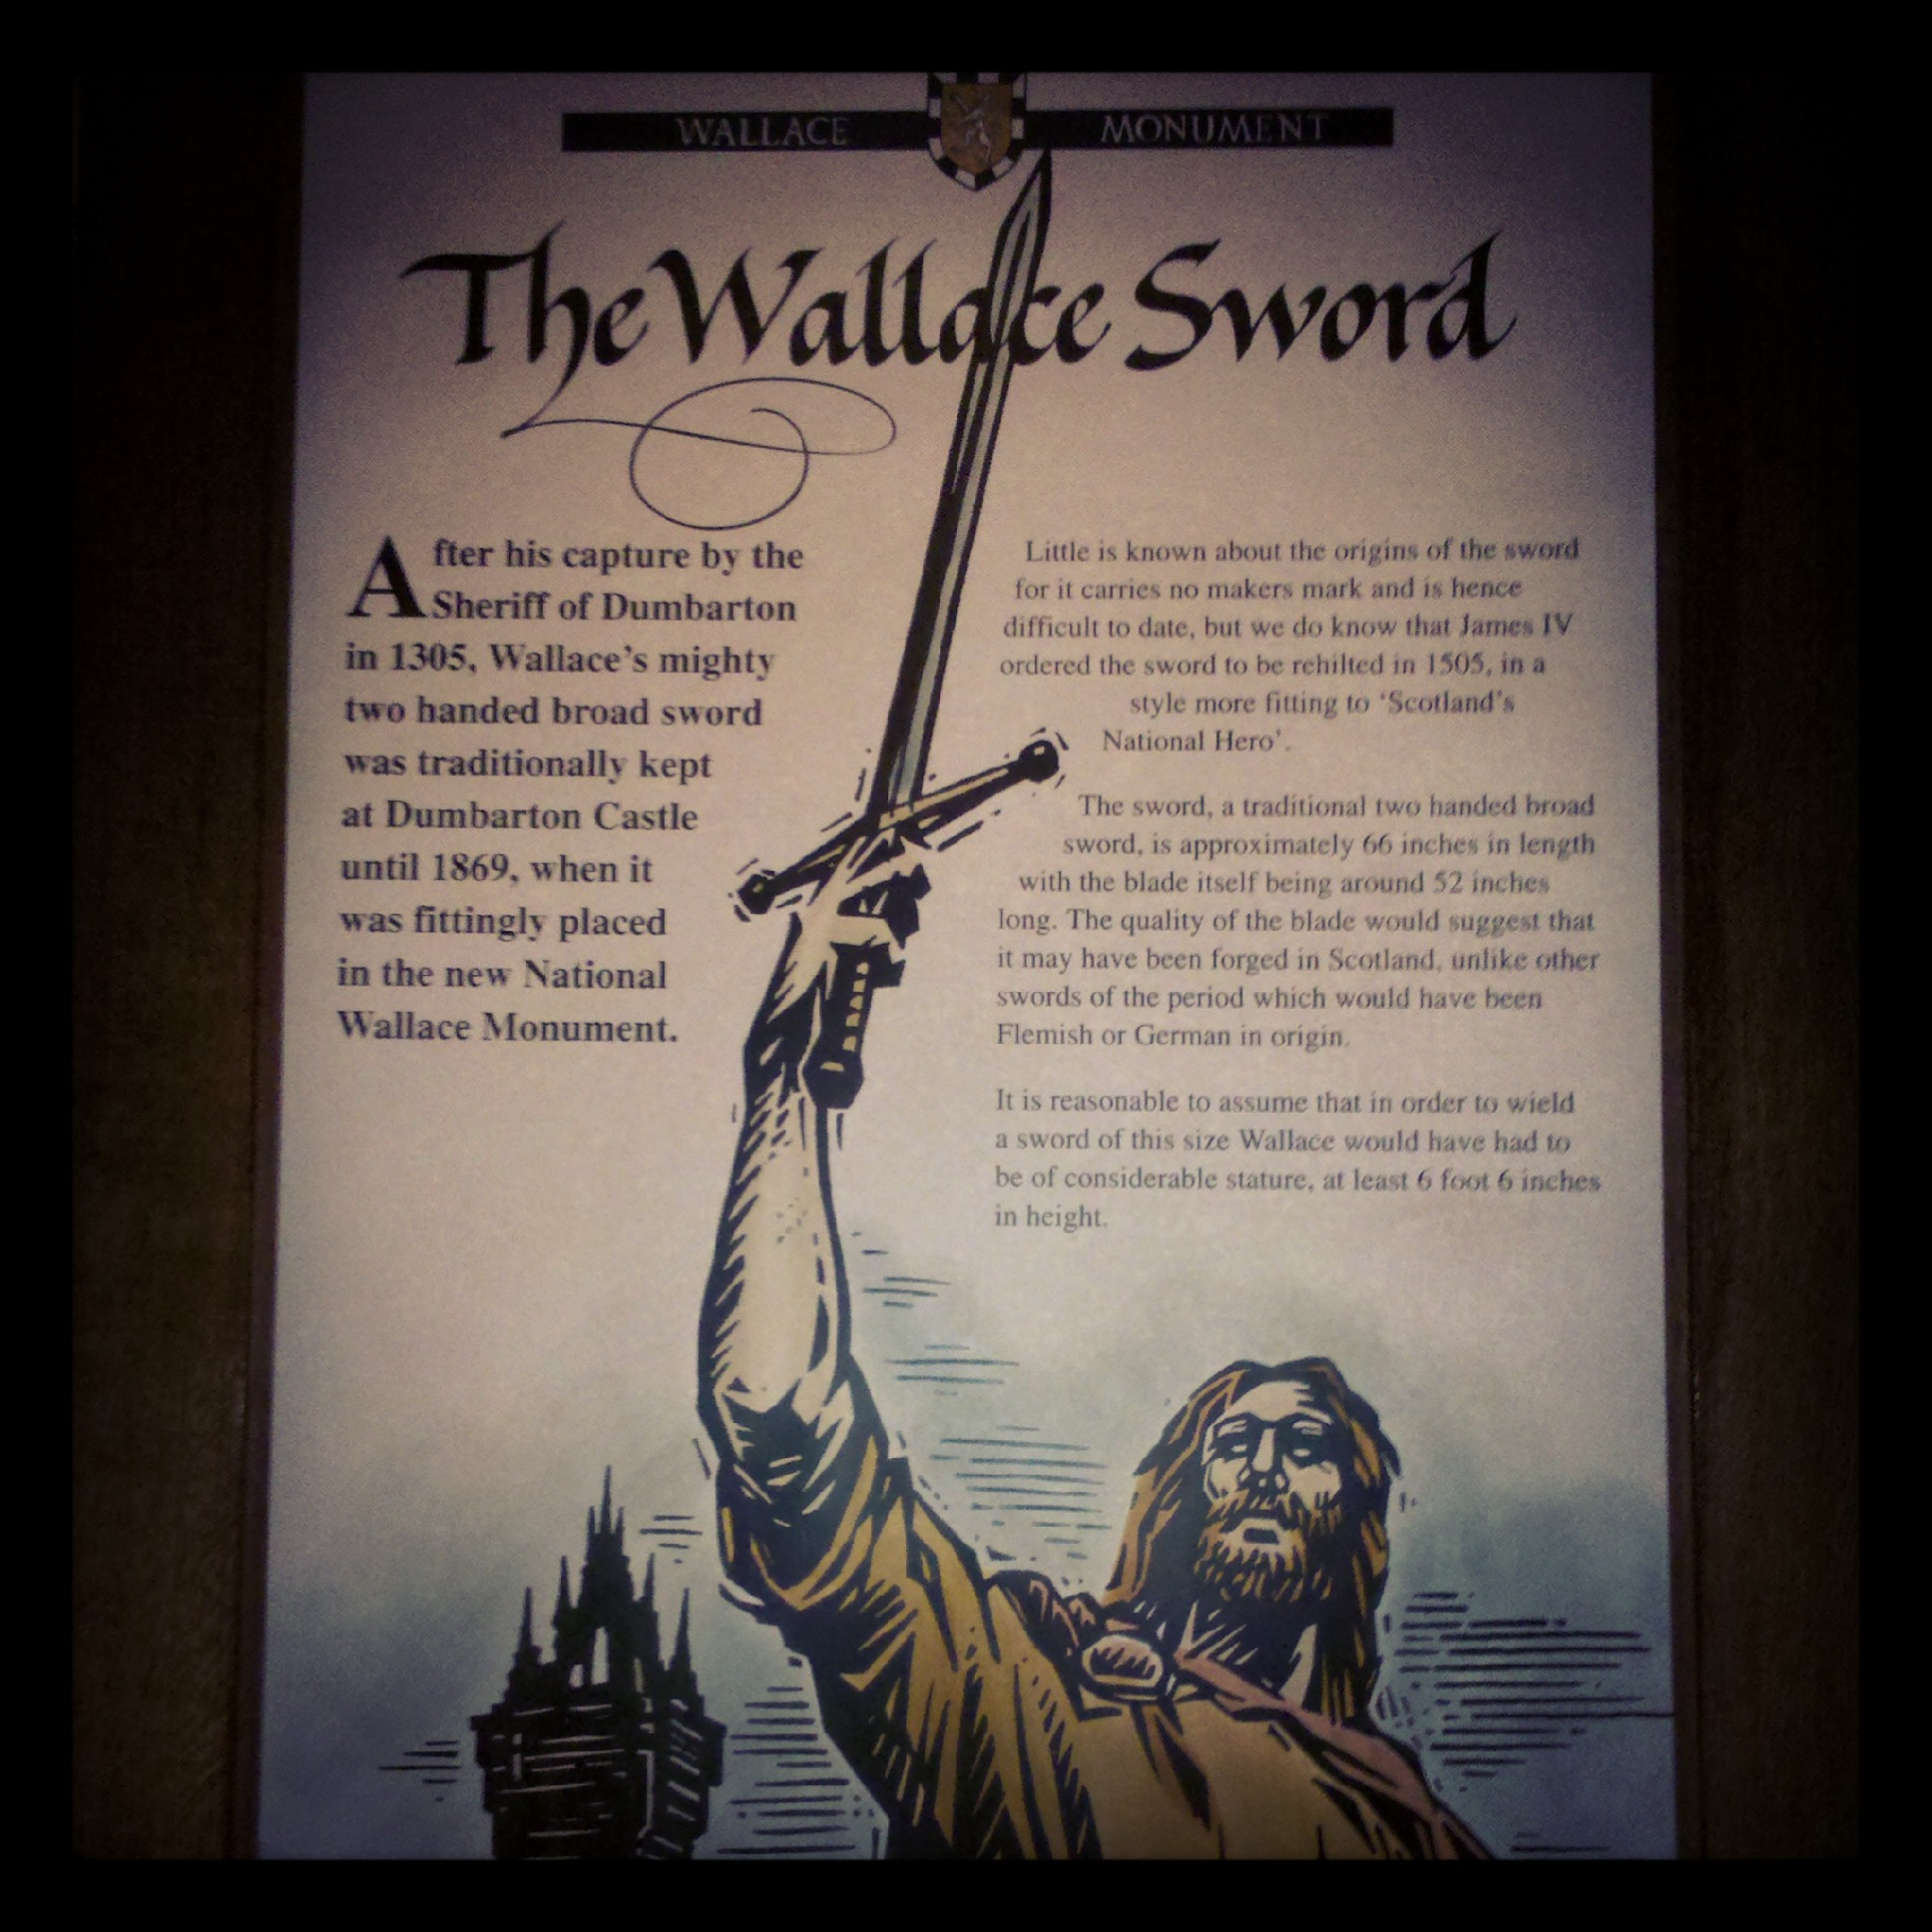 The Wallace sword